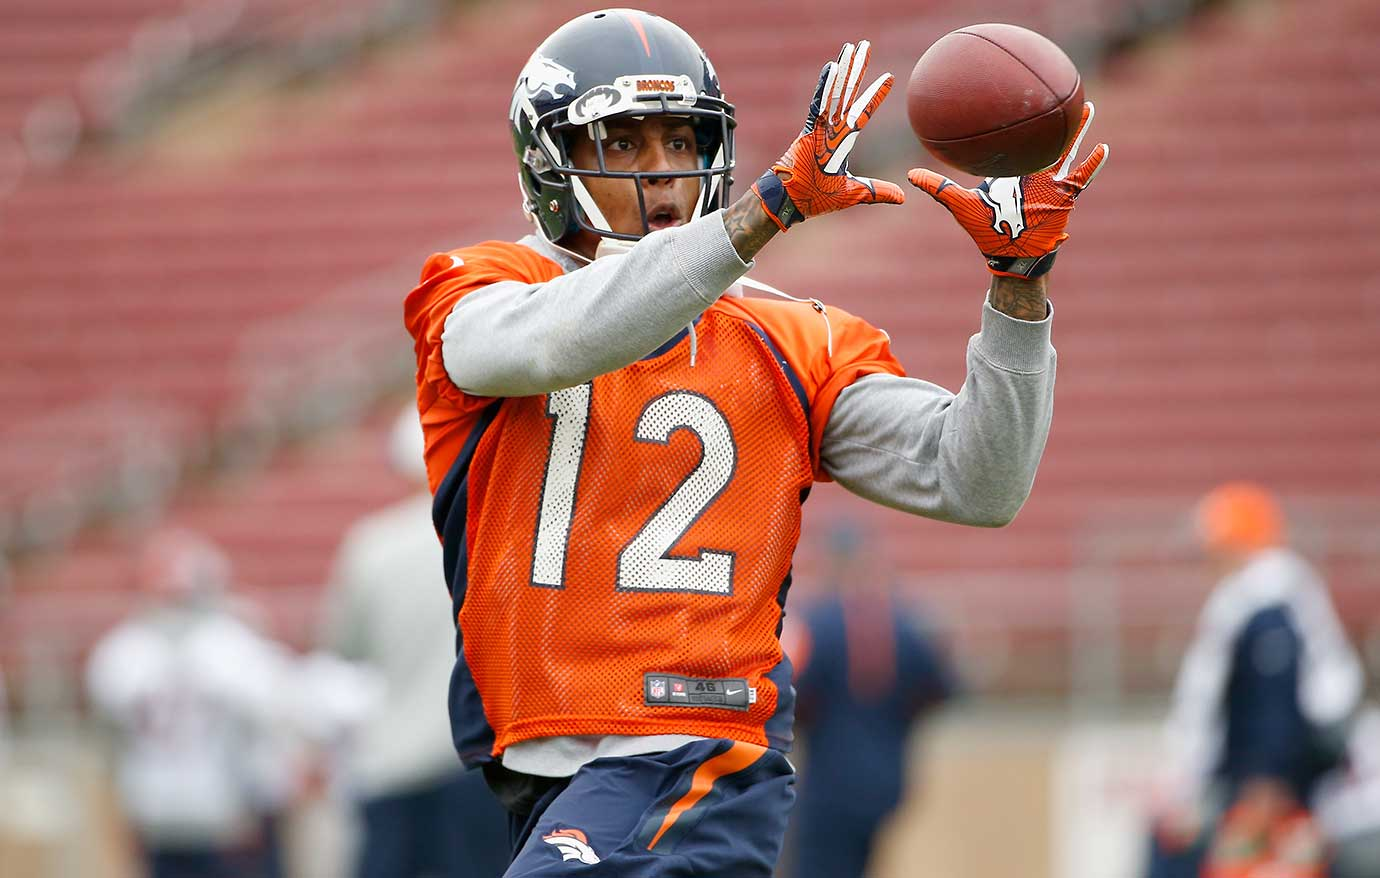 Andre Caldwell catches the ball during the Broncos practice at Stanford University.